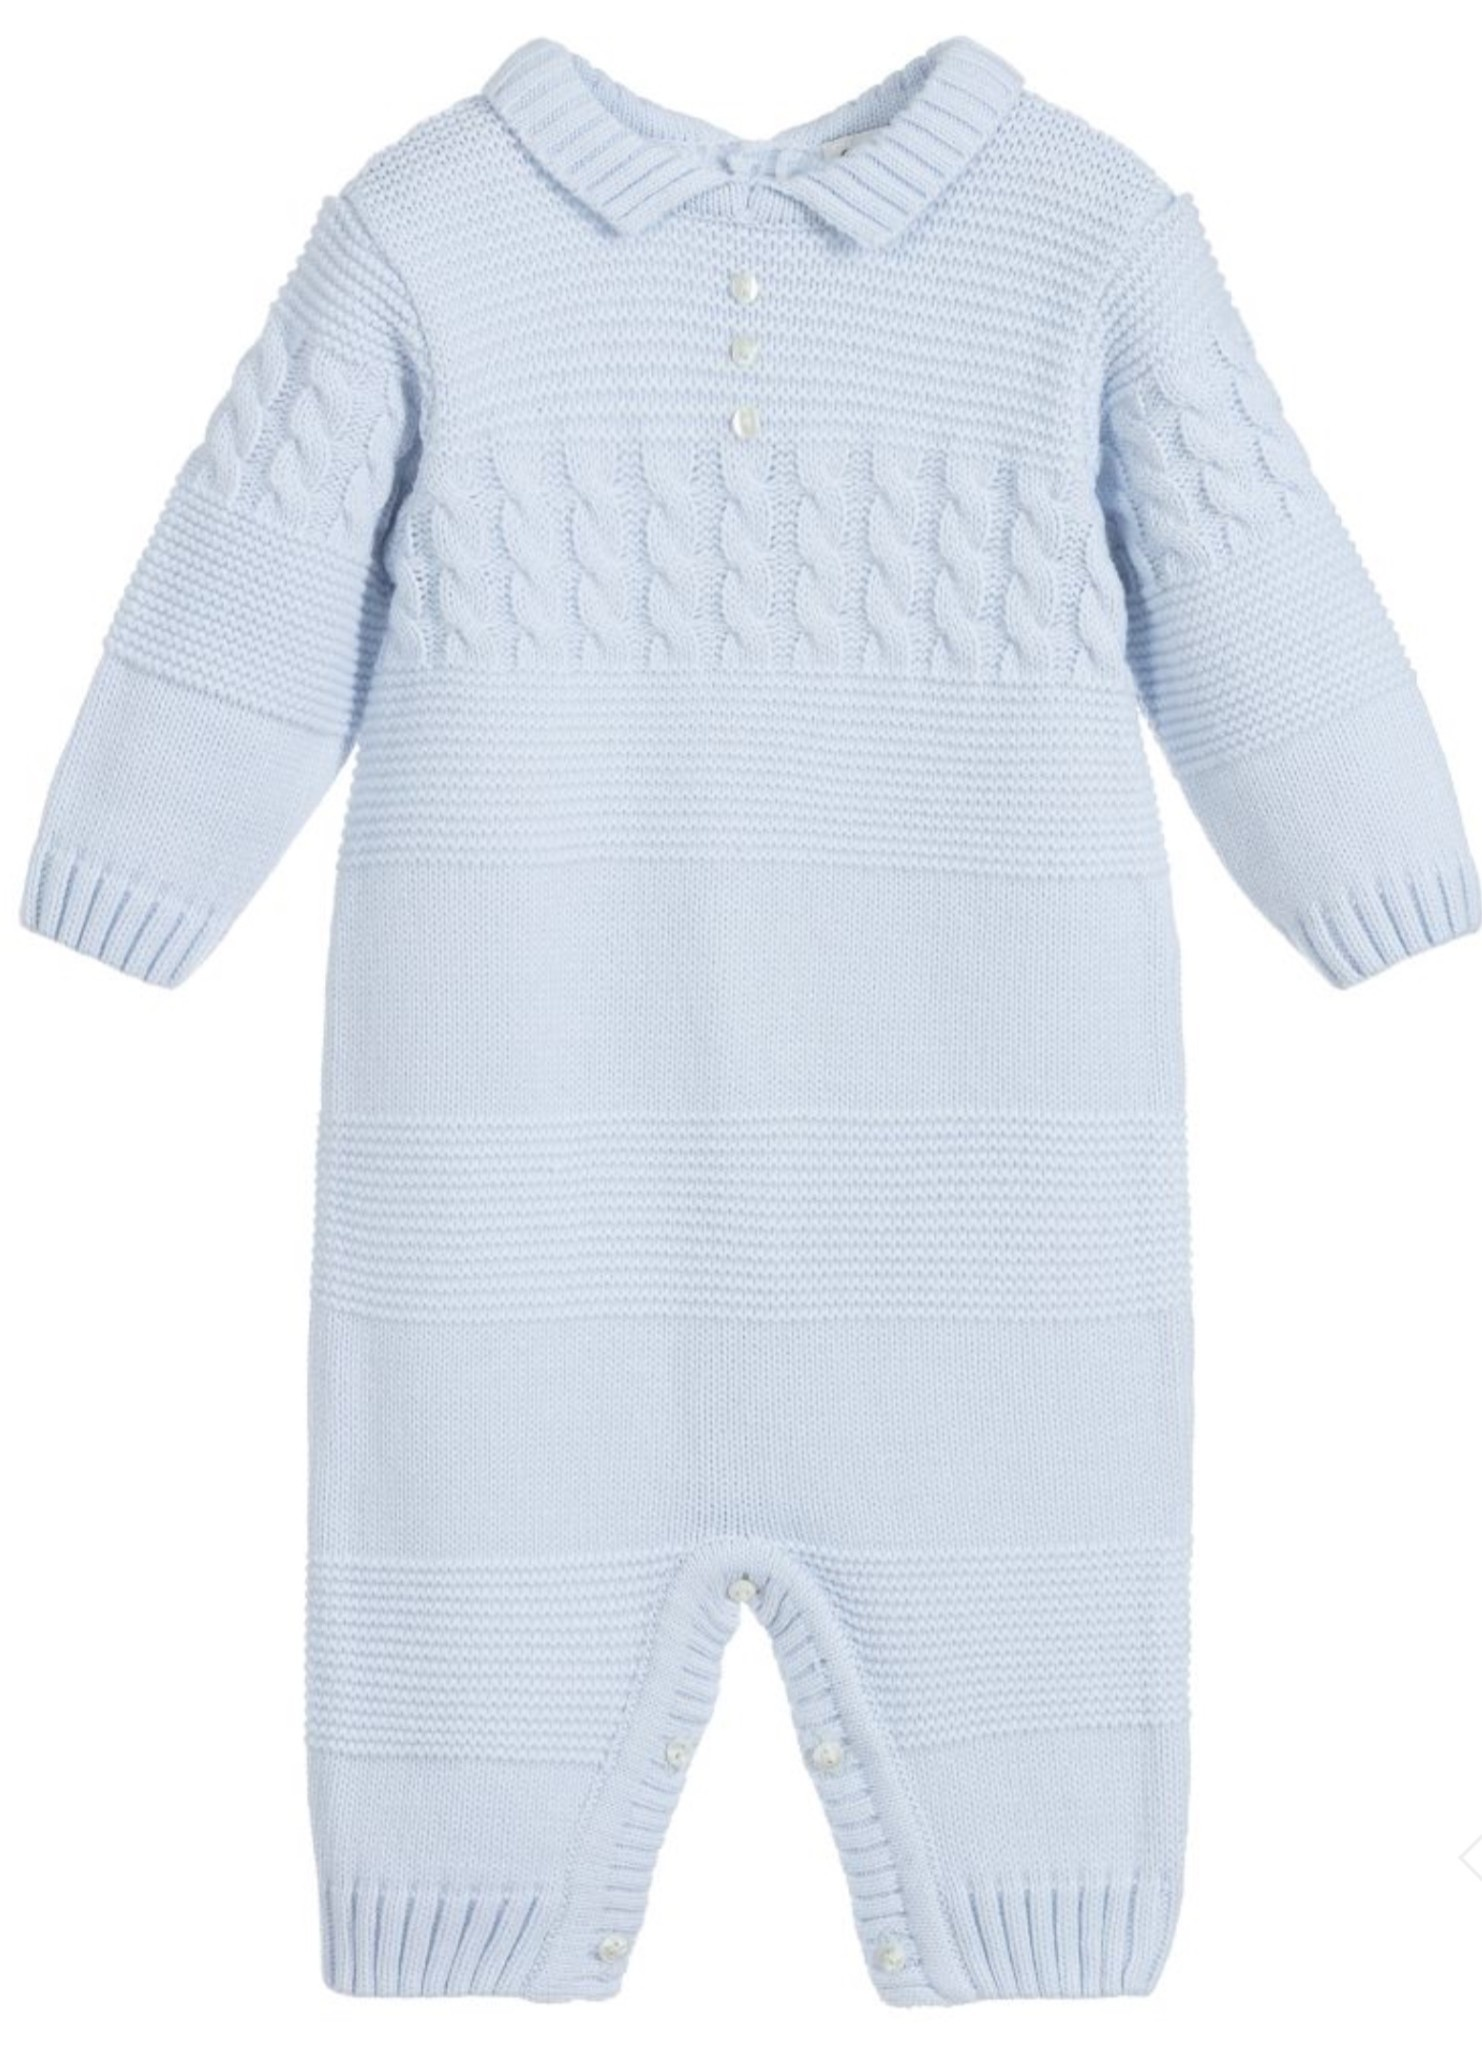 Sarah Louise Sarah Louise Blue Knitted All in One